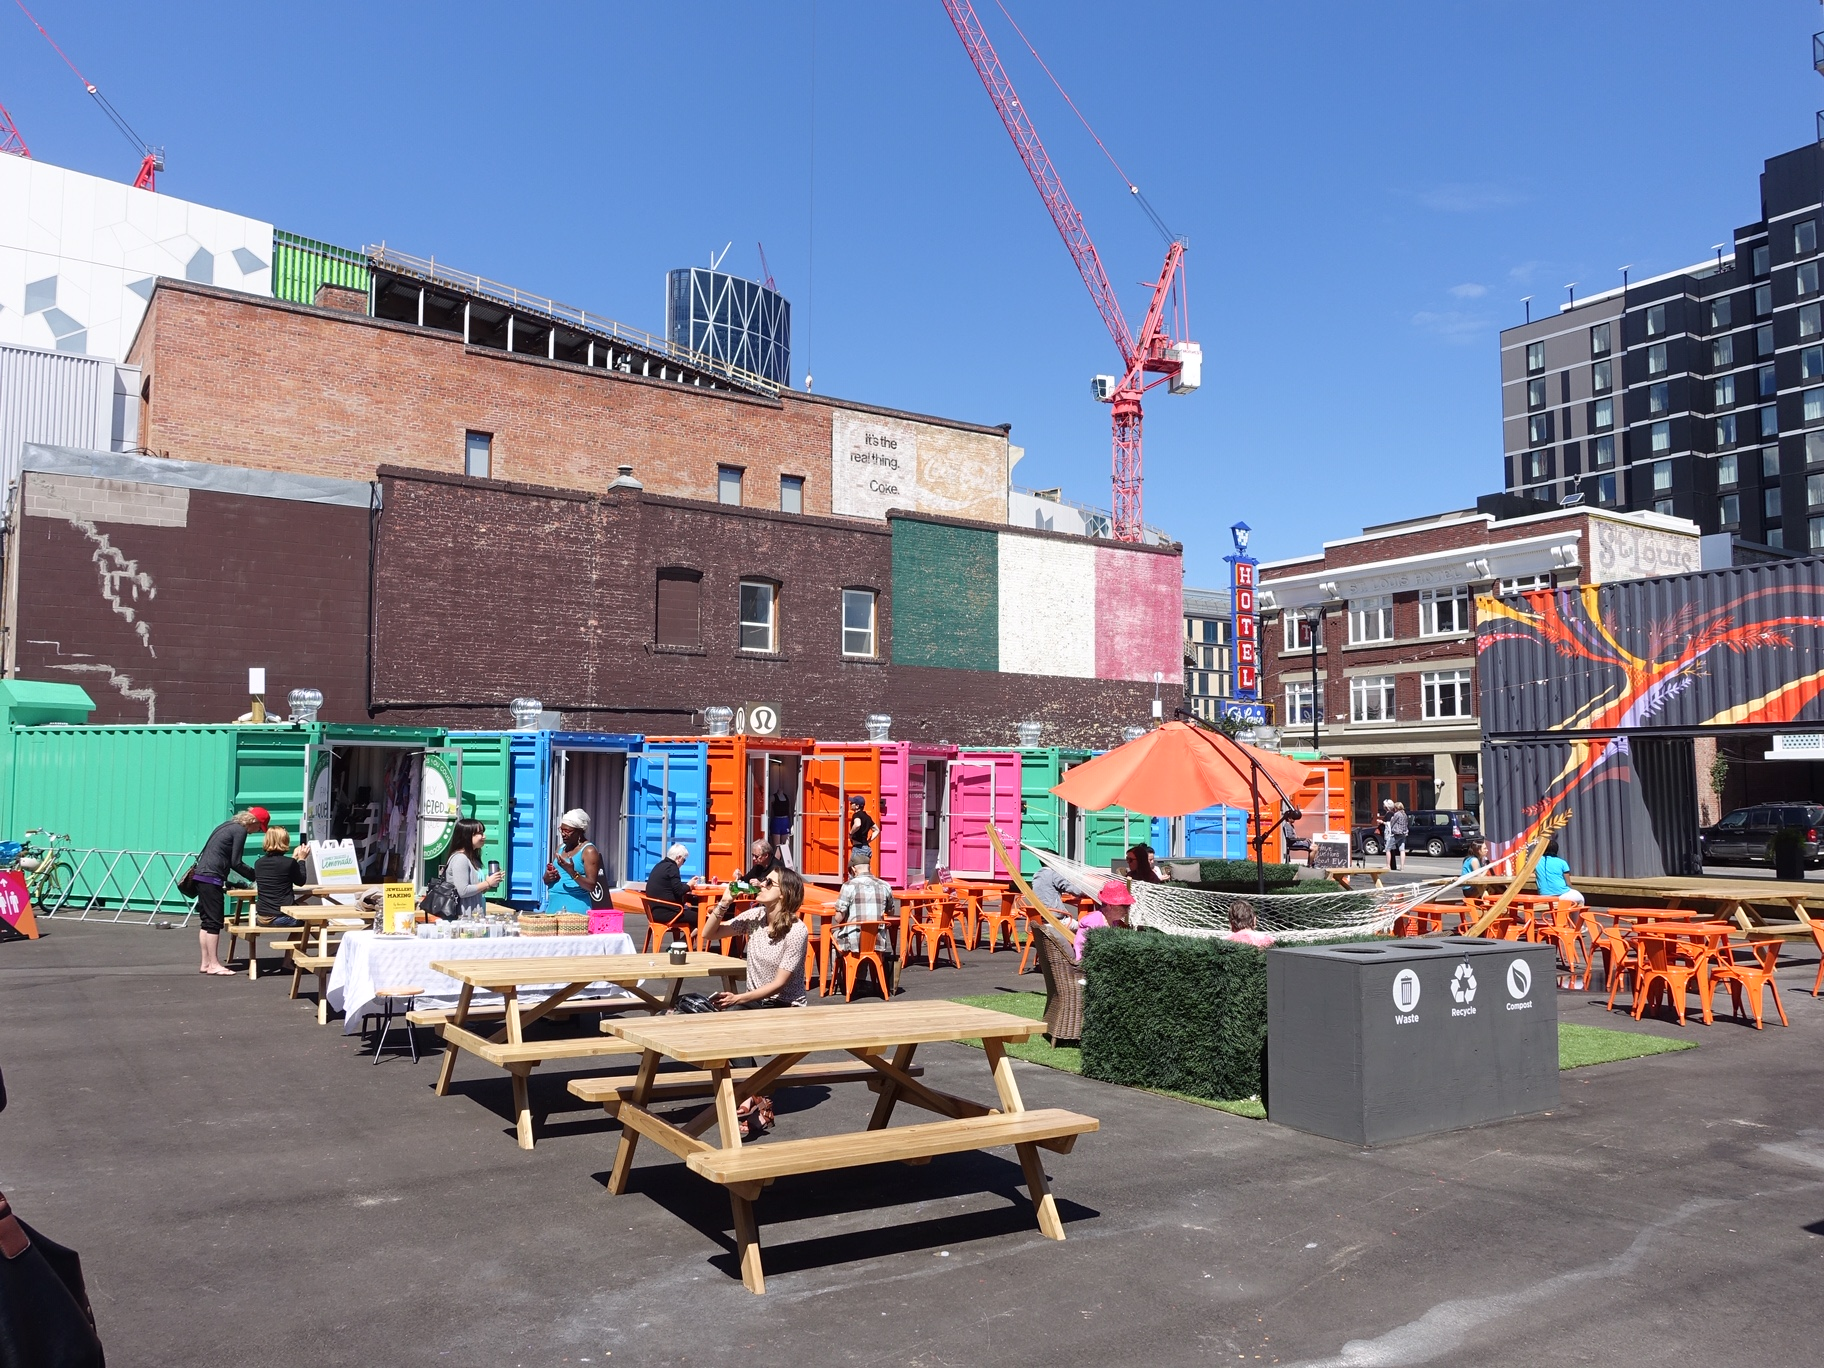 East Village's summer pop-up container park converts a surface parking lot into a funky people place thanks to CMLC. Eau Claire residents would love to see their parking lots programmed like this.